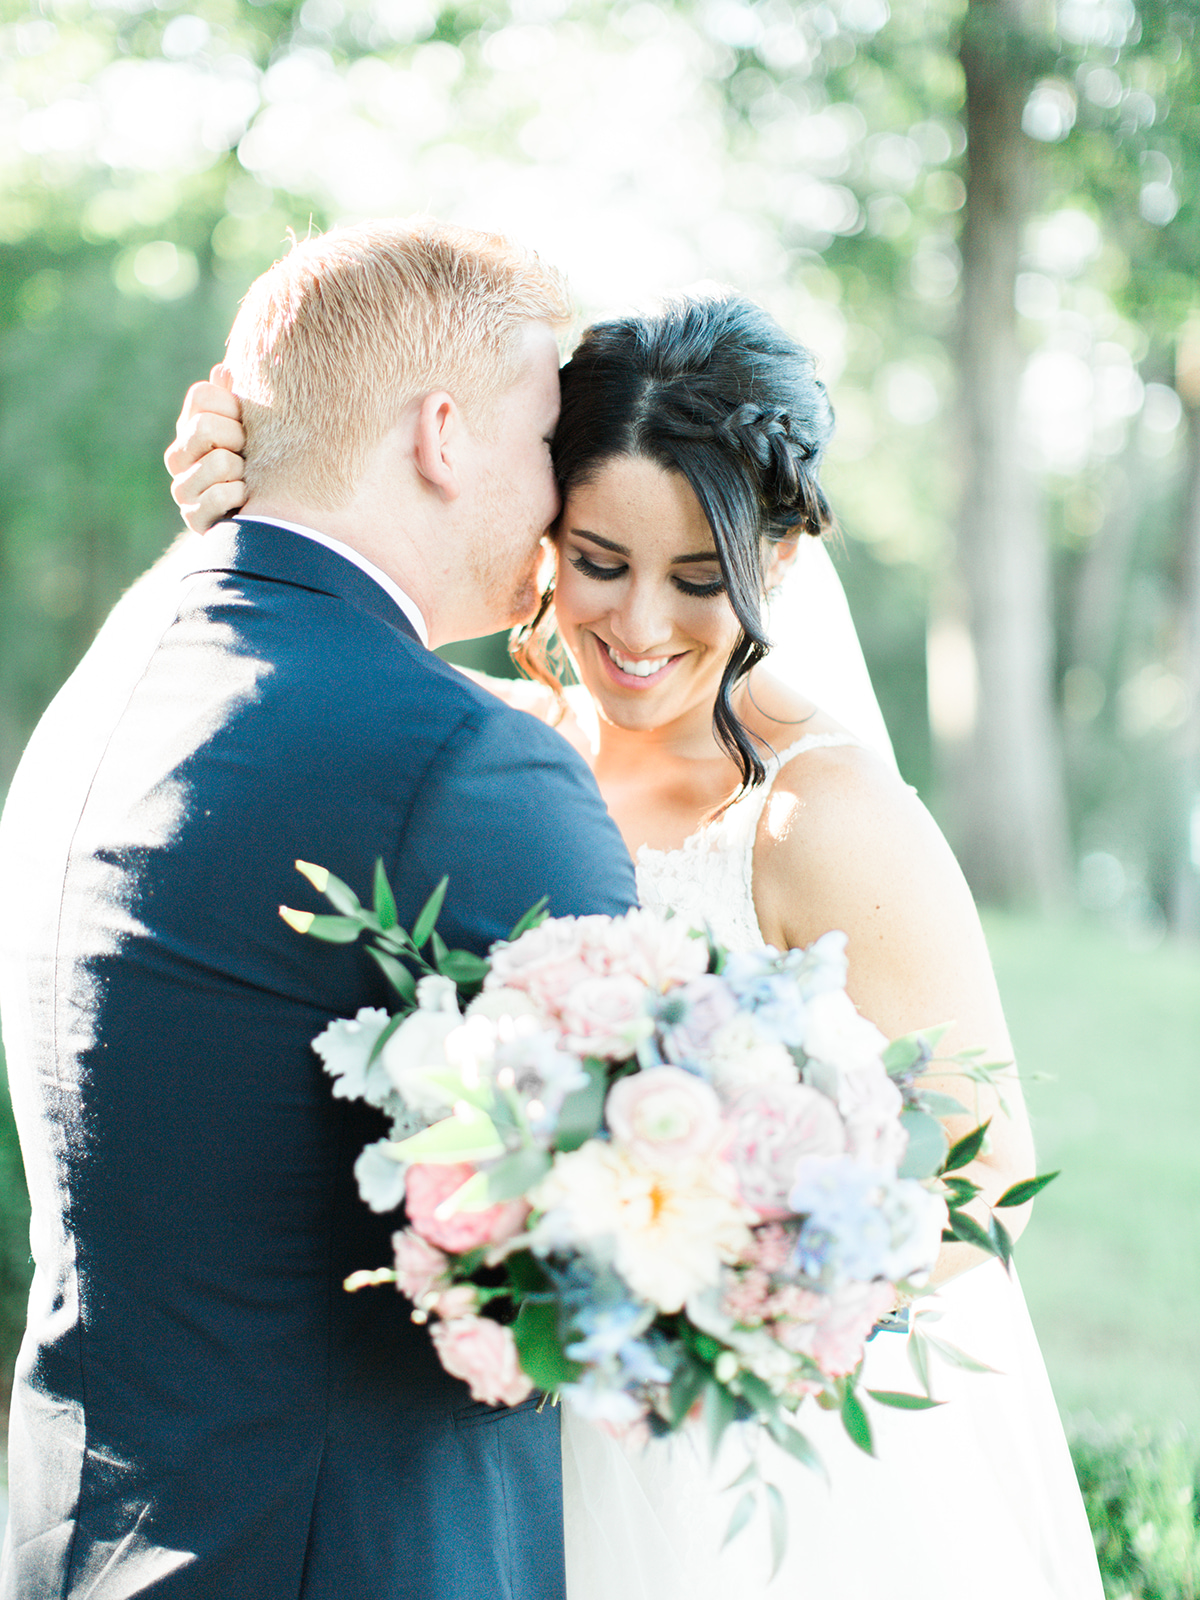 Hannah-bjorndal-bride-groom-soft-palette-bridal-bouquet-murrayhill-wedding-leesburg-virginia.jpg